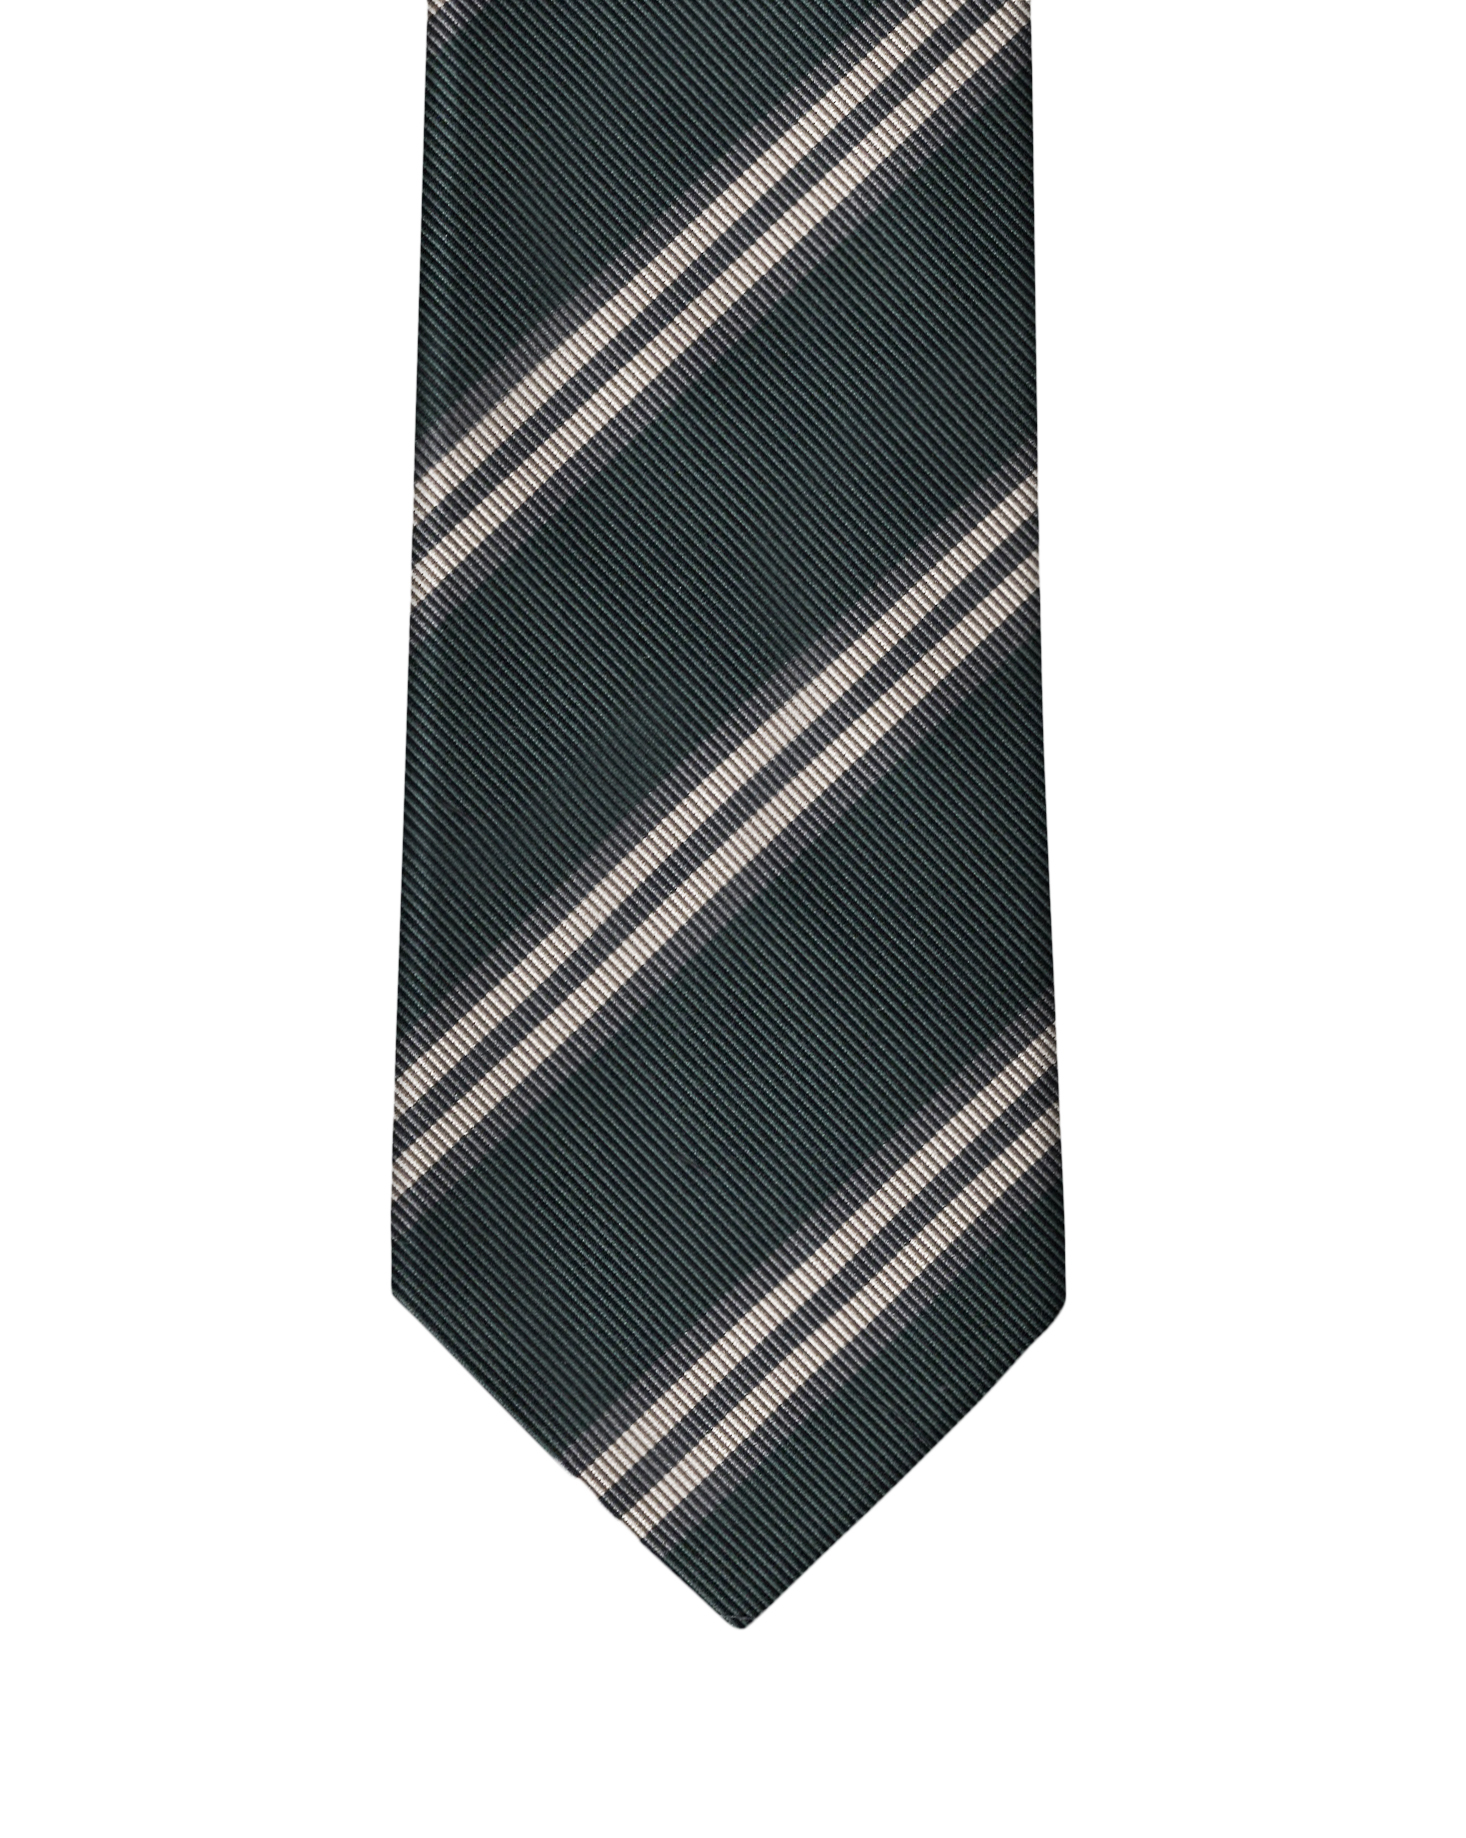 Charcoal, Grey, & Cream Classic Rep Stripe Necktie